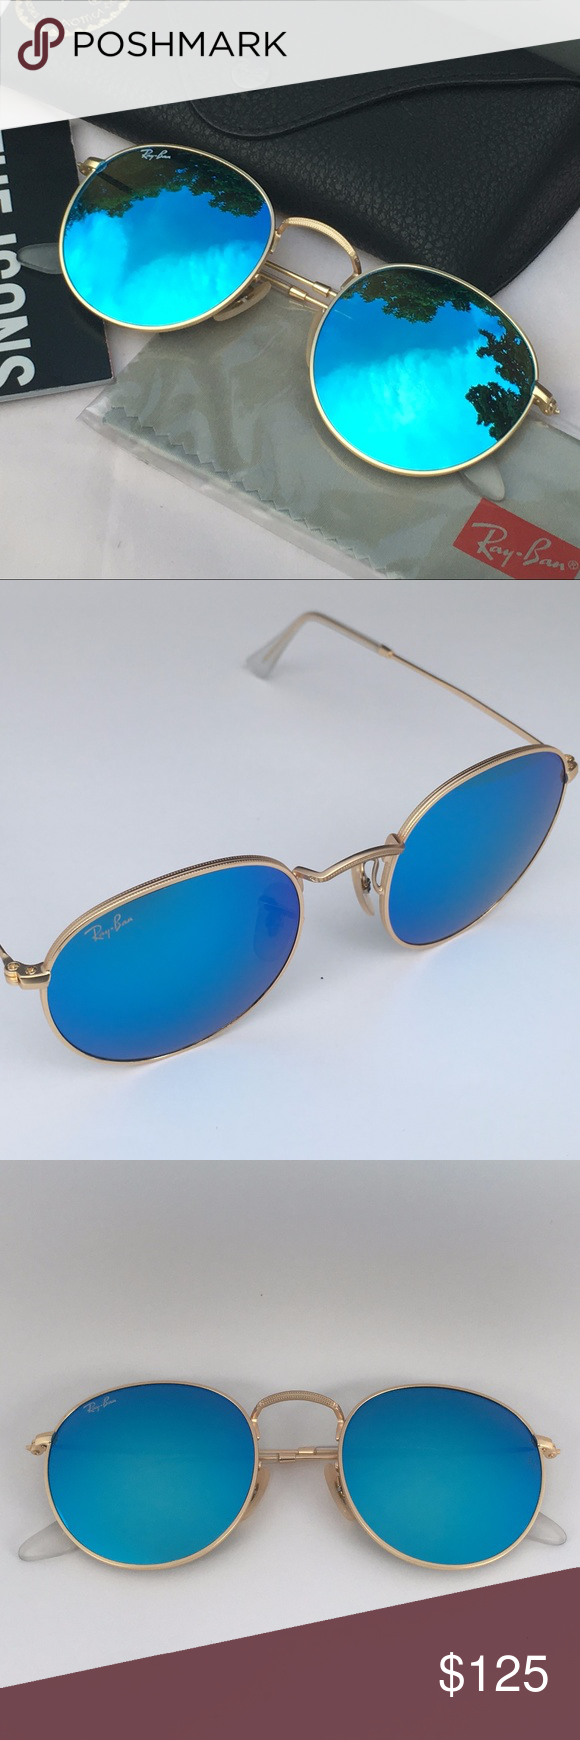 60ff91f382 RAY-BAN ROUND SHAPE SUNGLASSES Blue Mirror Gold 100% AUTHENTIC   BRAND NEW